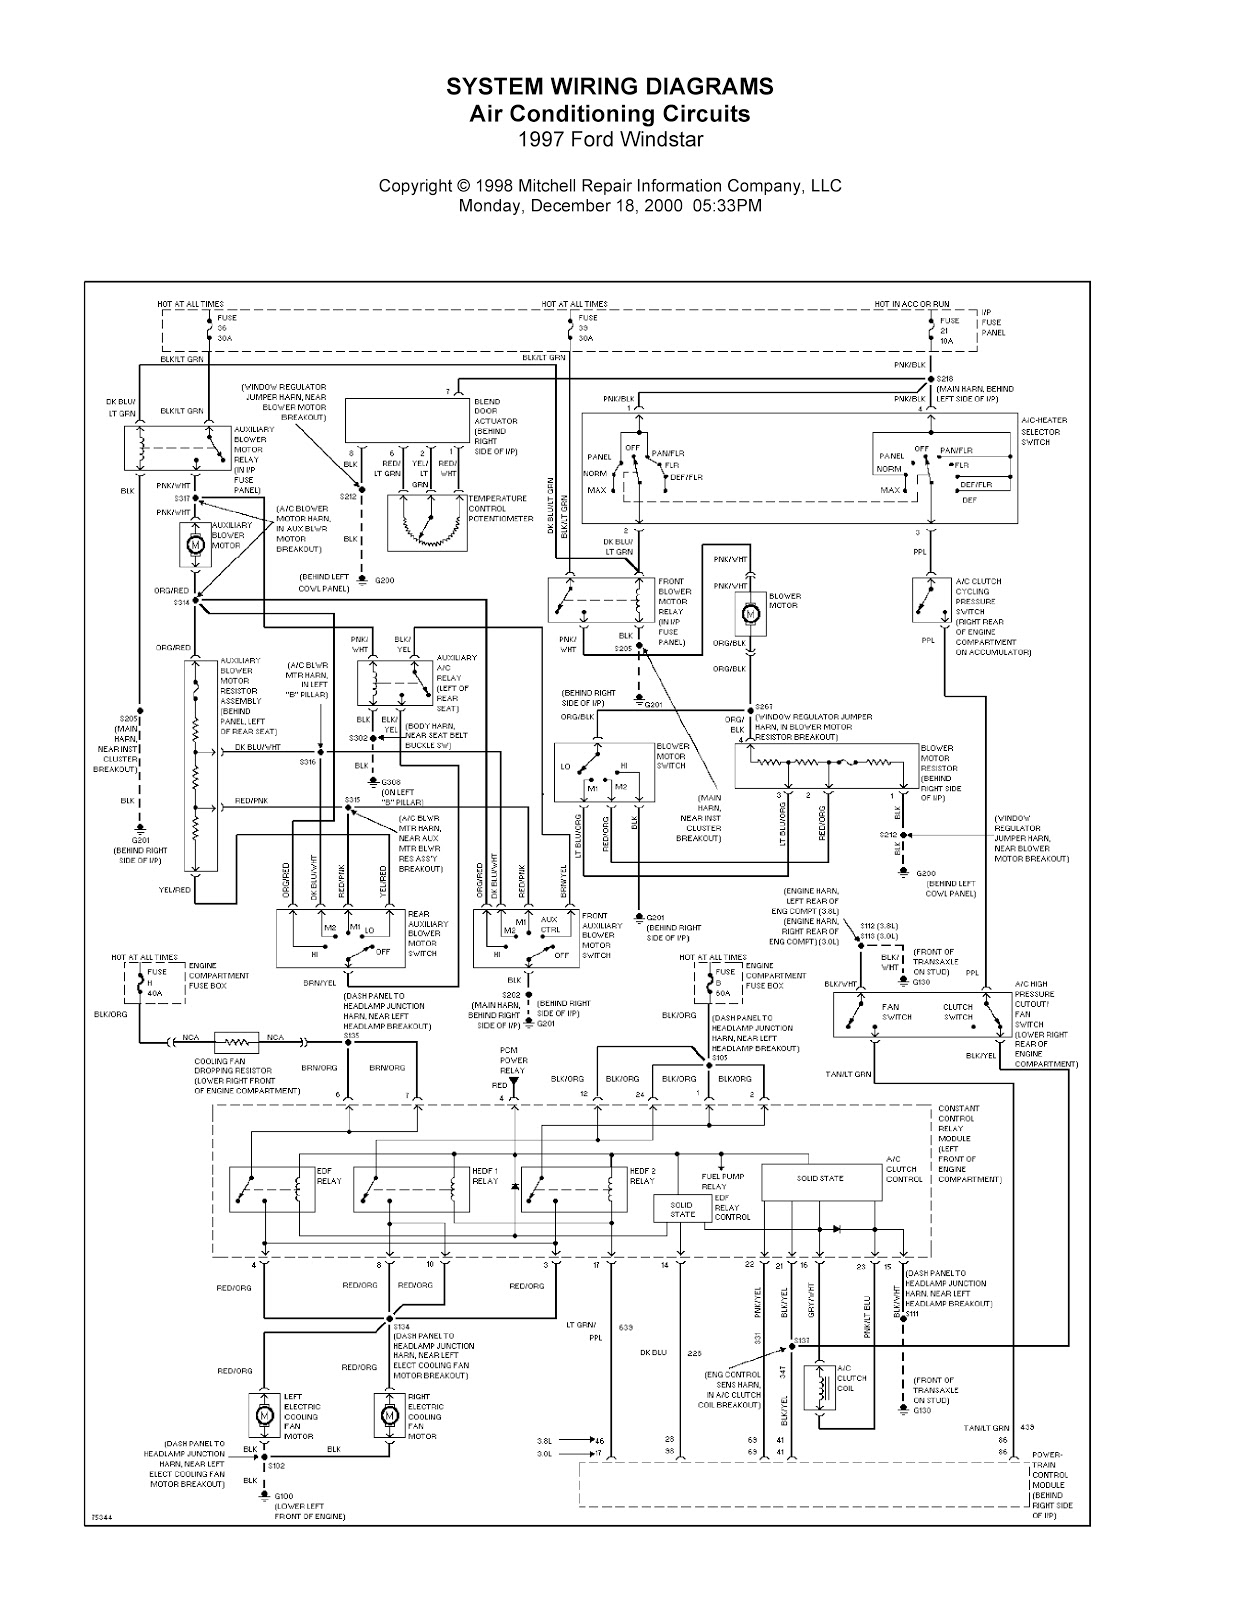 0001 2000 ford windstar wiring diagram ford windstar 3 8 engine diagram 1999 ford windstar wiring diagram at bayanpartner.co